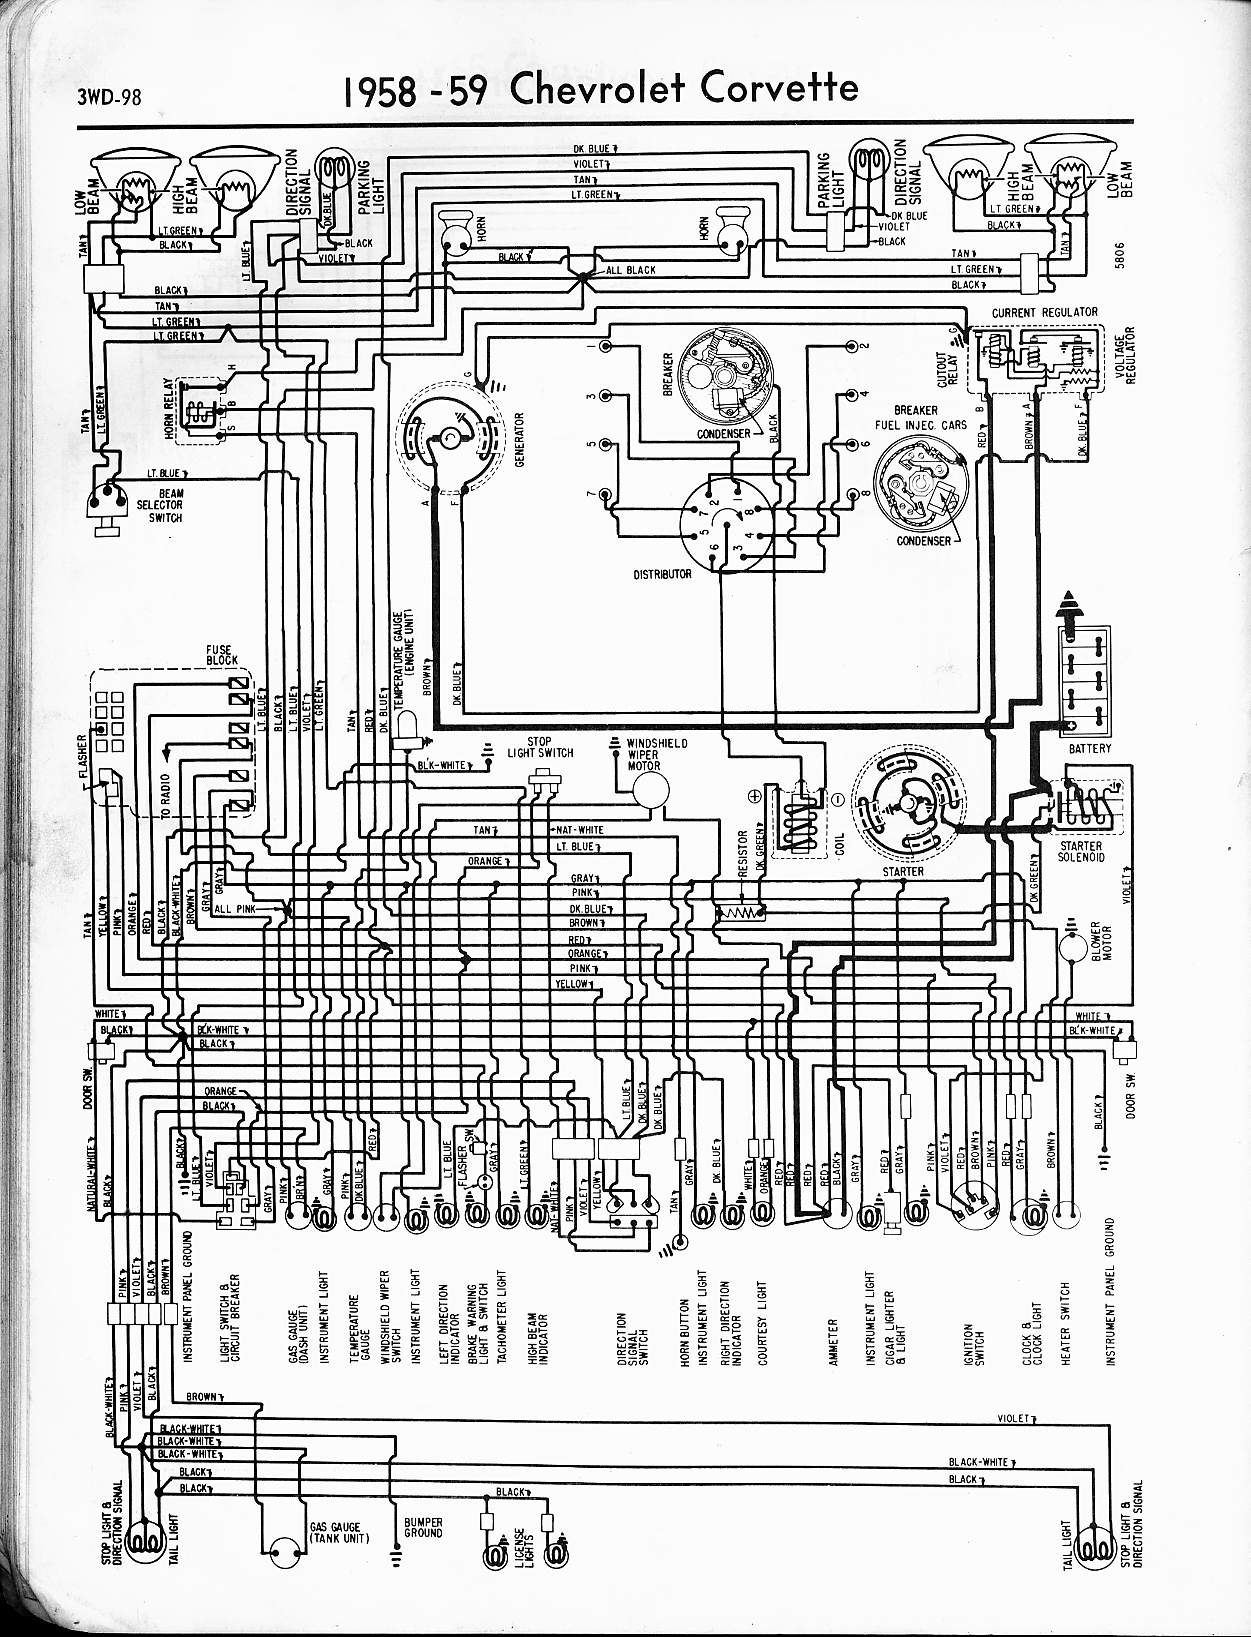 MWireChev58_3WD 098 57 65 chevy wiring diagrams light switch diagram 1960 chevy pickup at soozxer.org